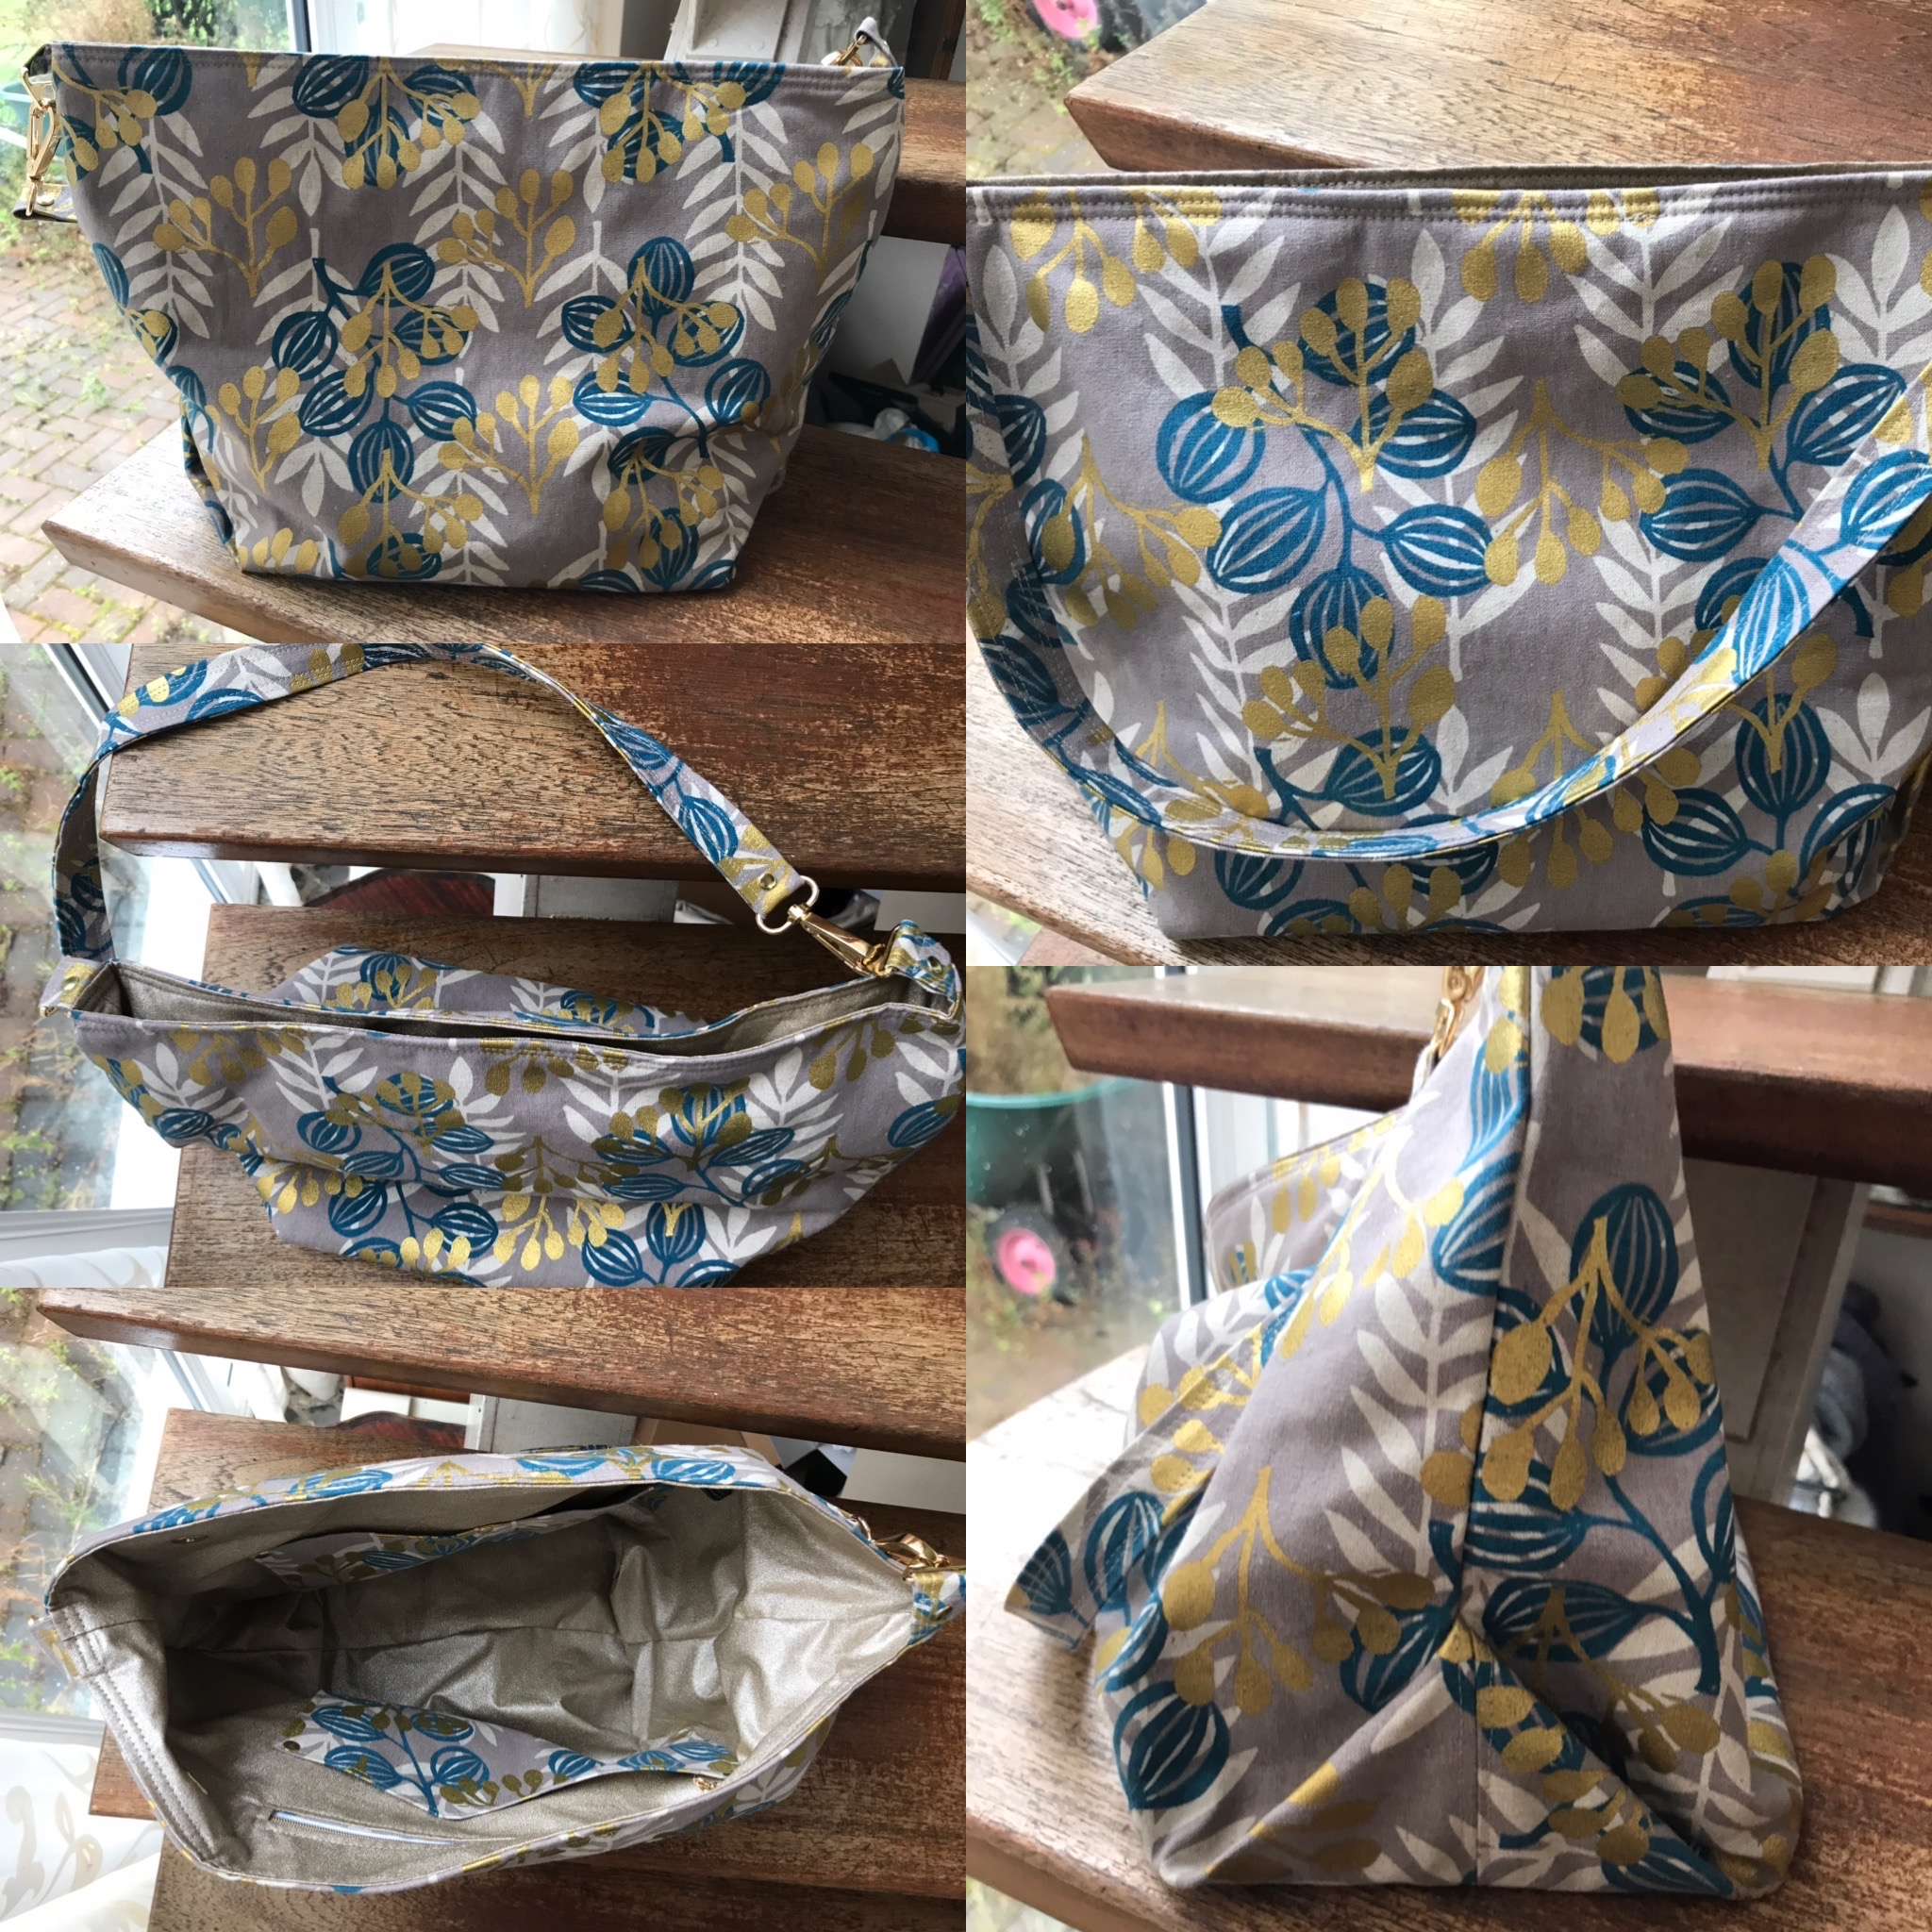 The Cwtsh Bag from Sewing Patterns by Mrs H, made by Rebecca Sumnall